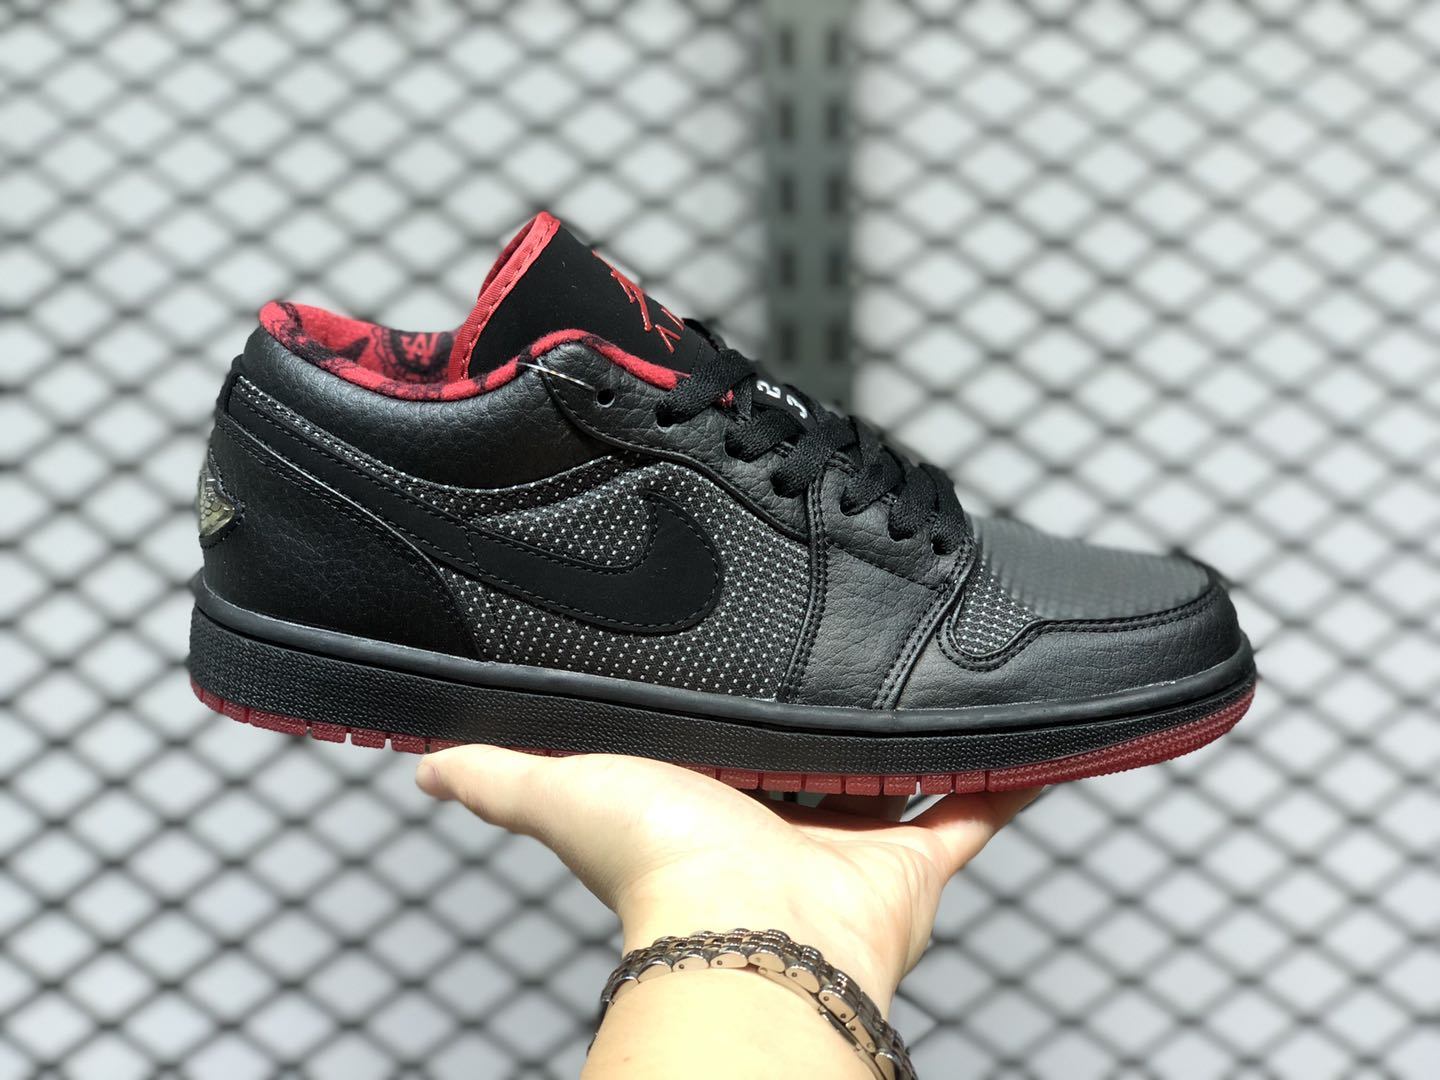 2020 Latest Air Jordan 1 Low Black/Metallic Silver-Varsity Red 309192-001